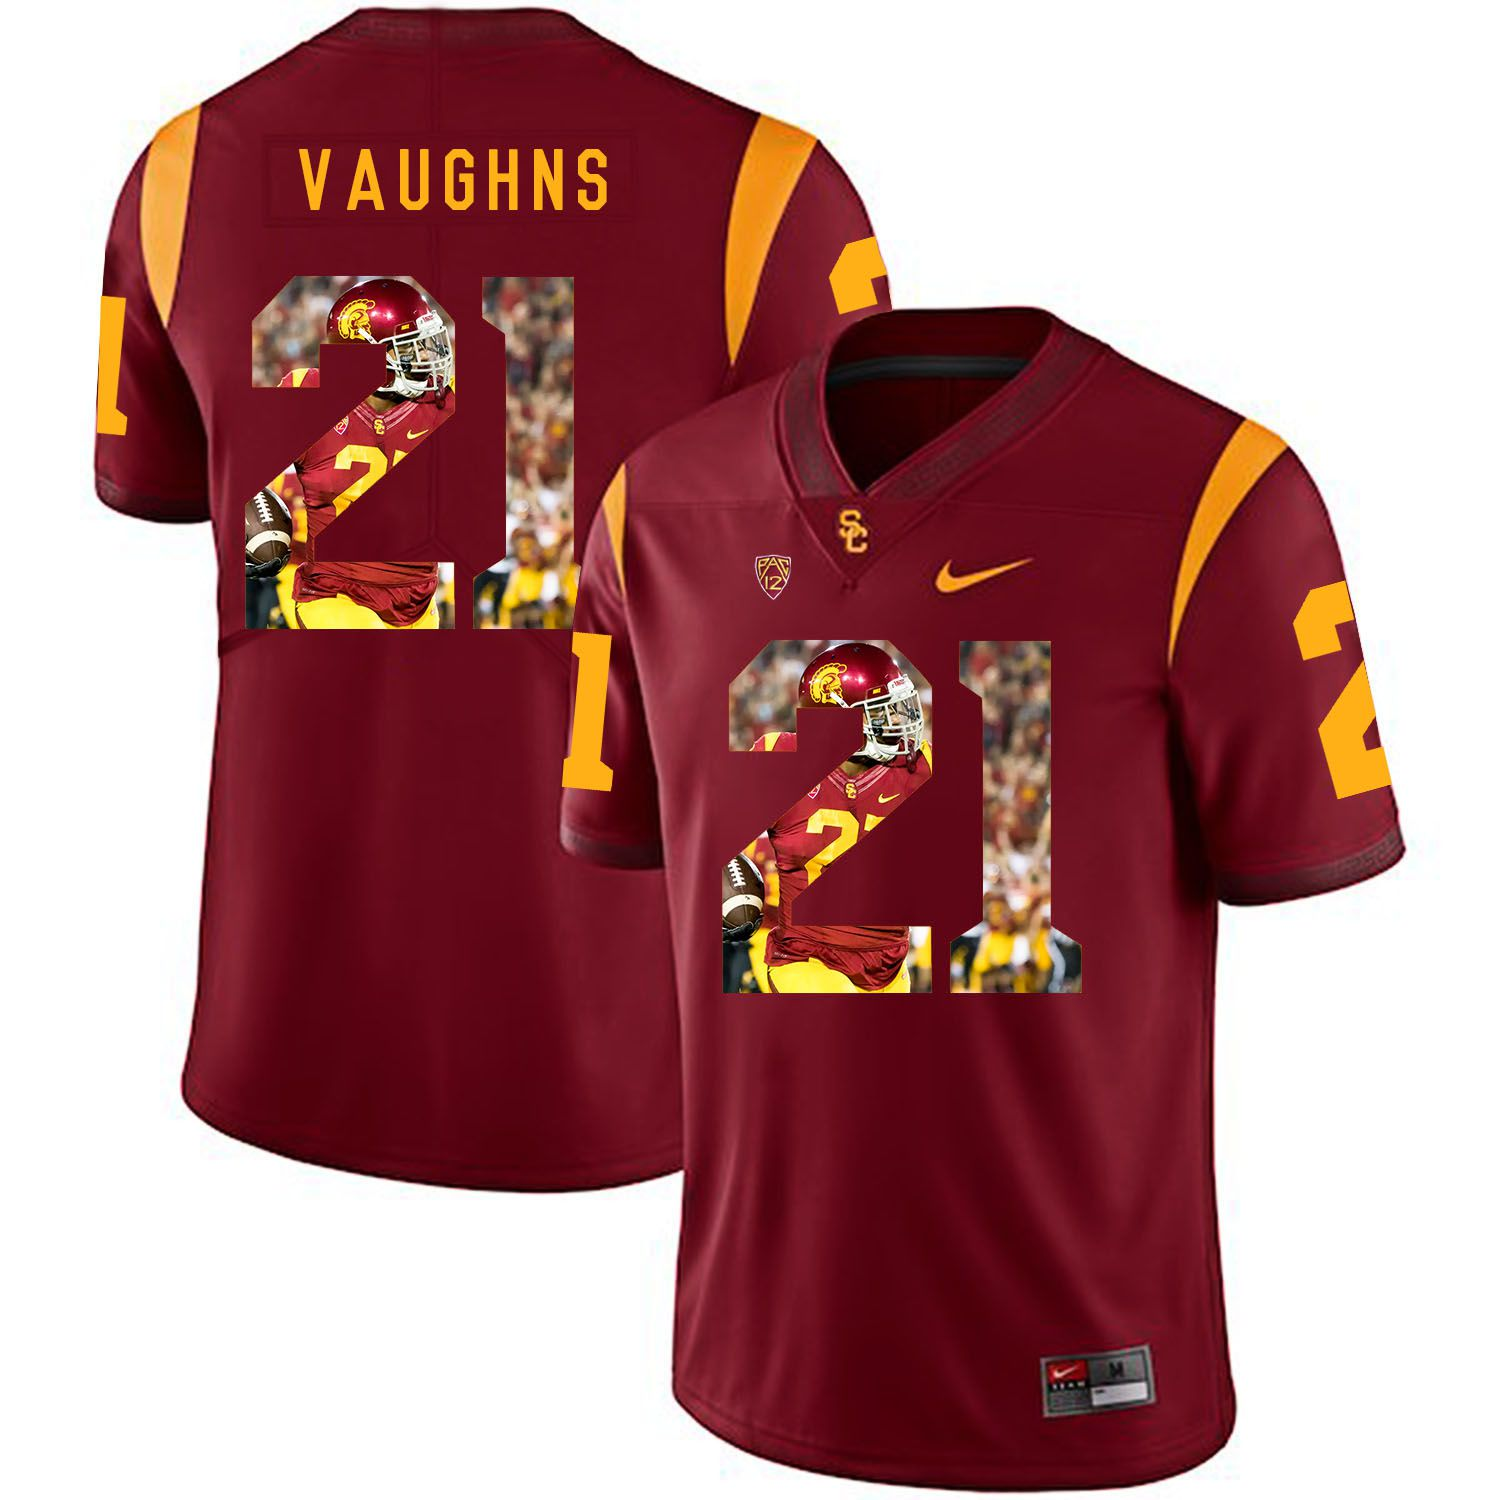 Men USC Trojans 21 Vaughns Red Fashion Edition Customized NCAA Jerseys